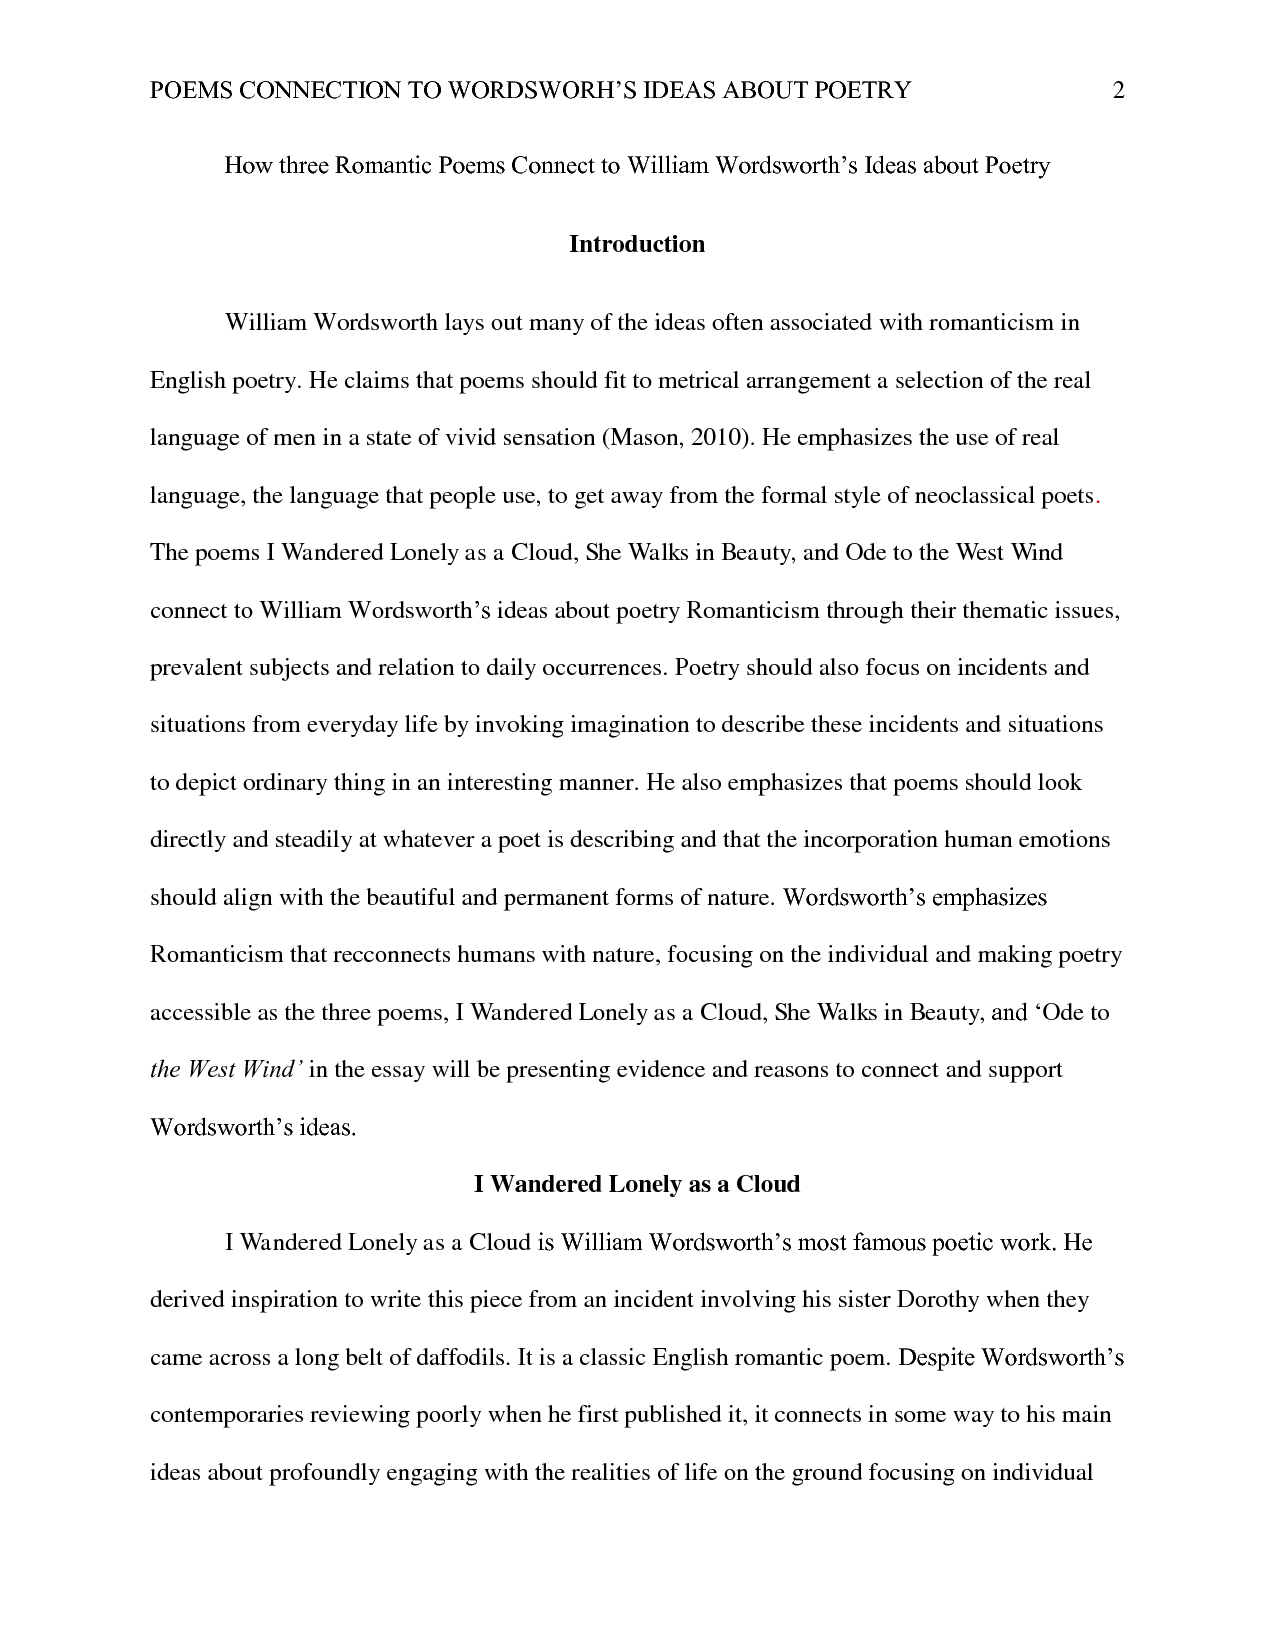 Example of good thesis